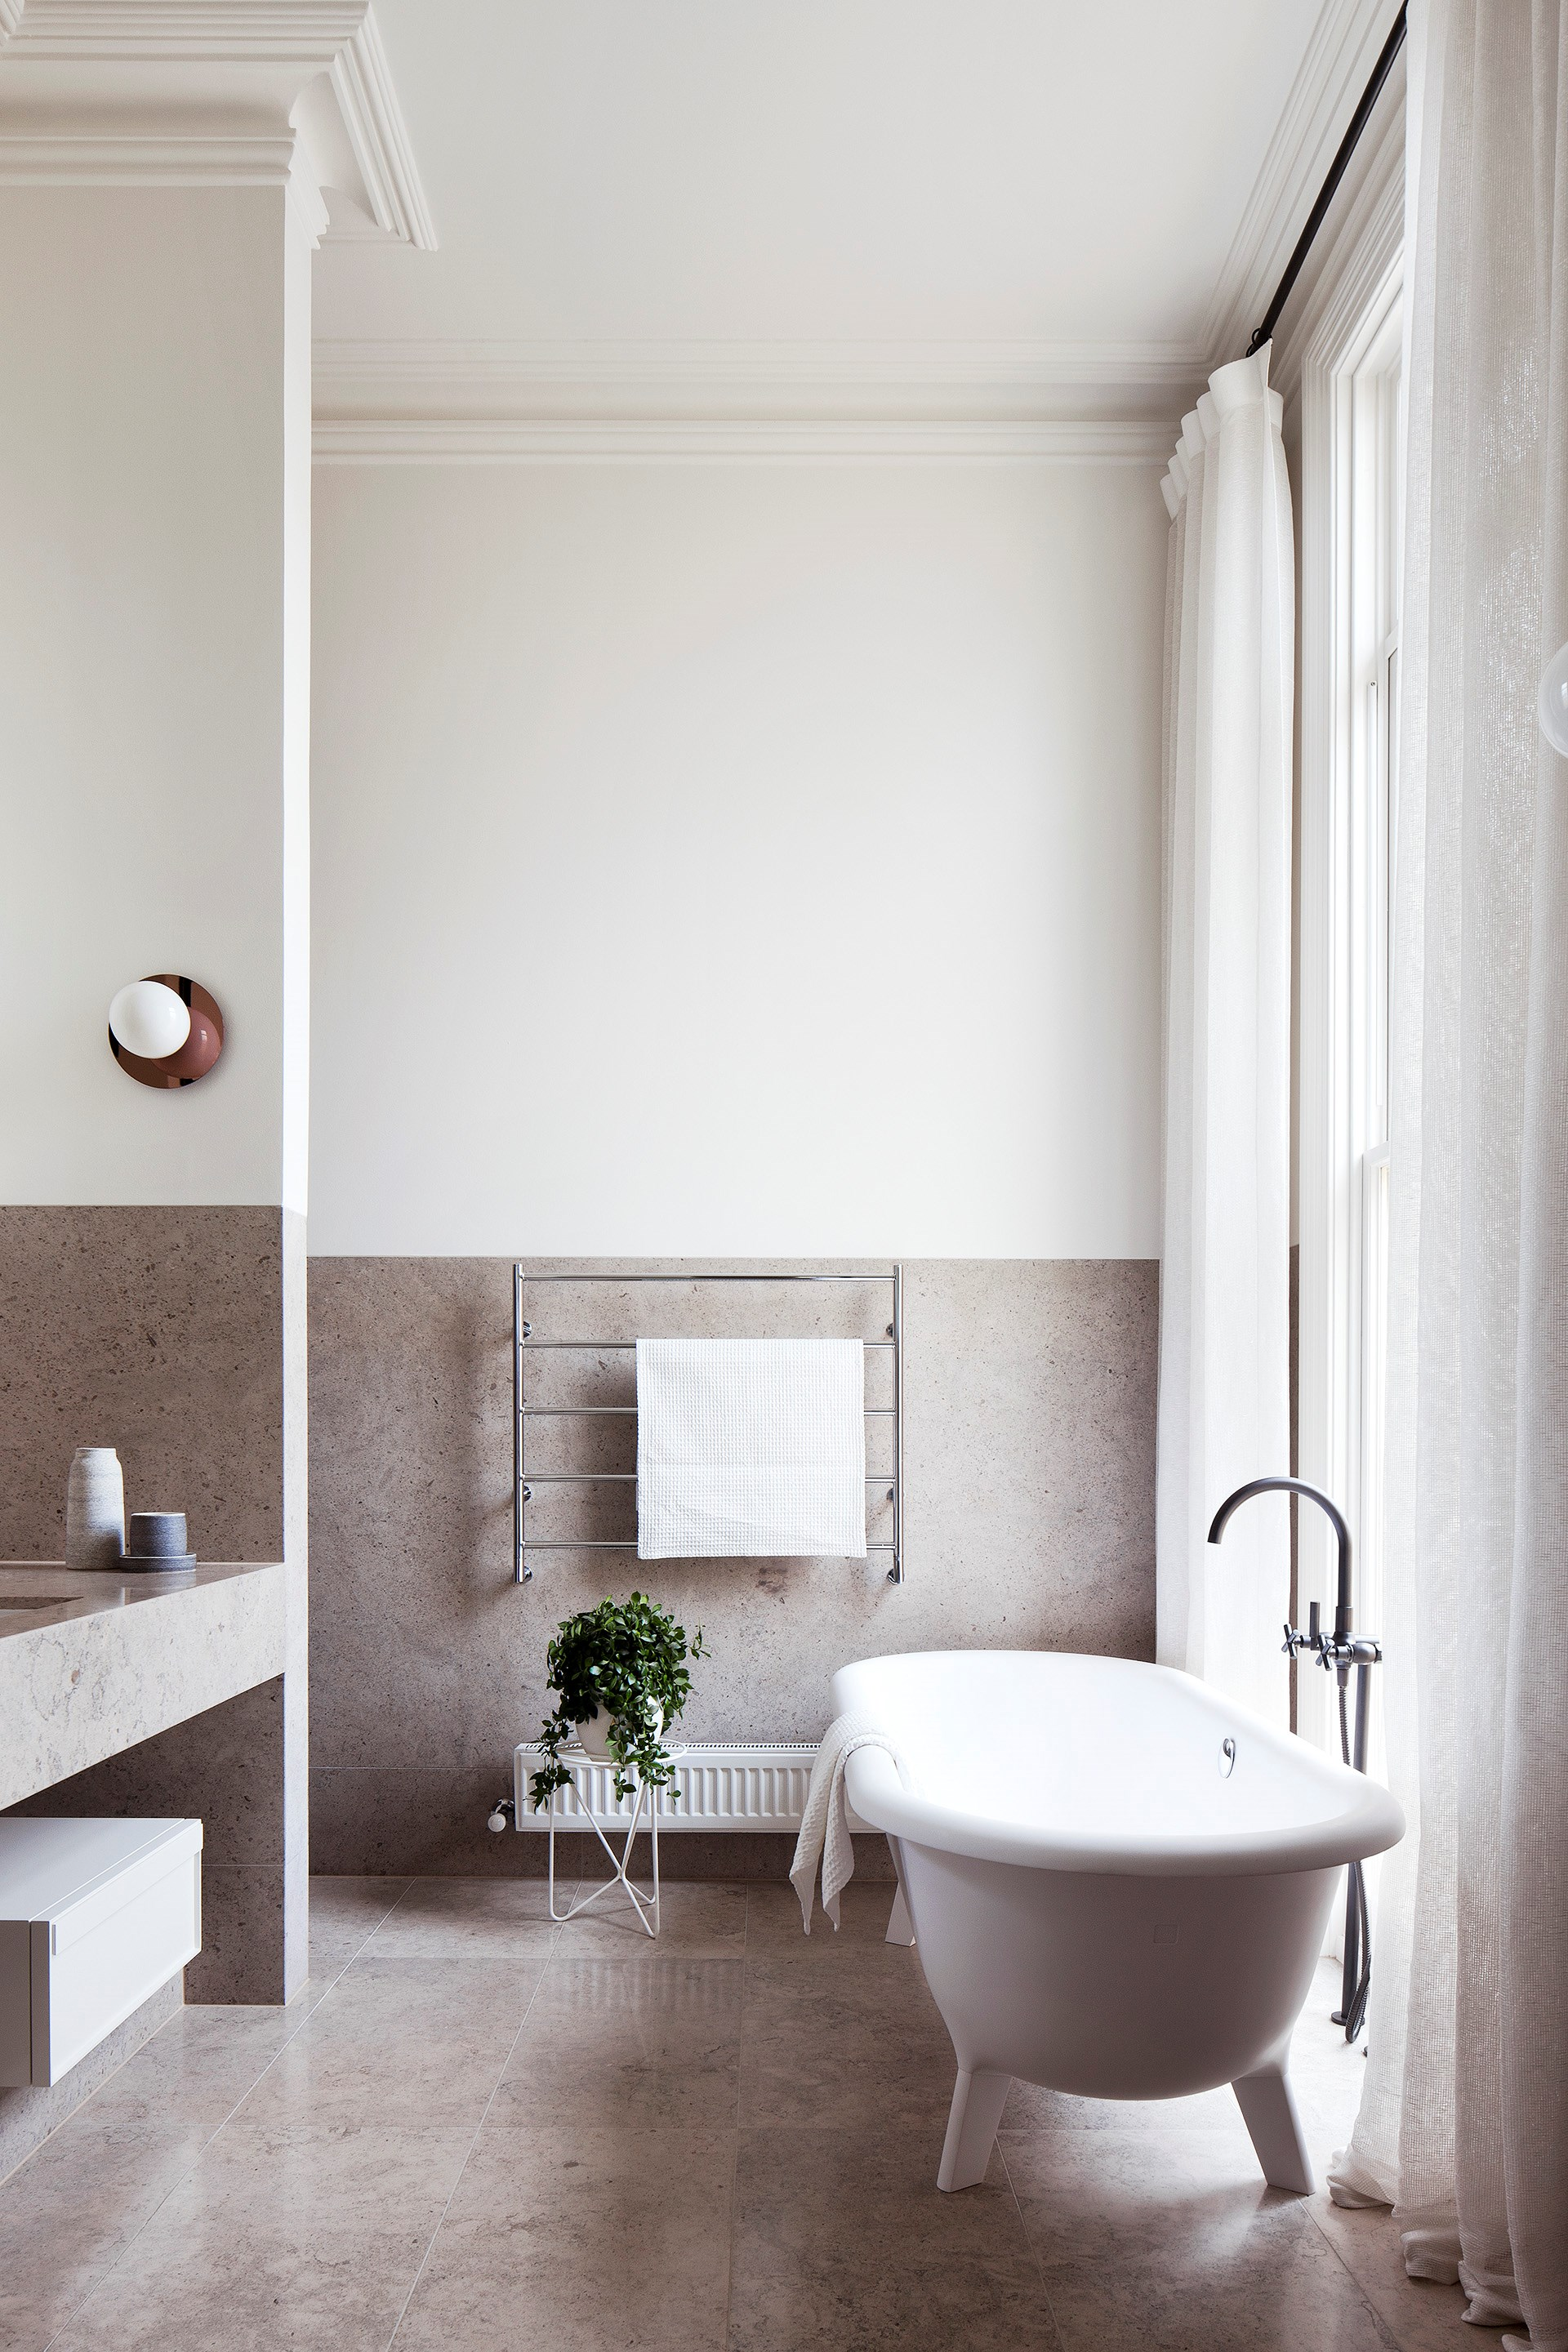 """The avant-garde lines of this Benedini 'Ottocento' bath from [Agape](http://www.agapedesign.it/